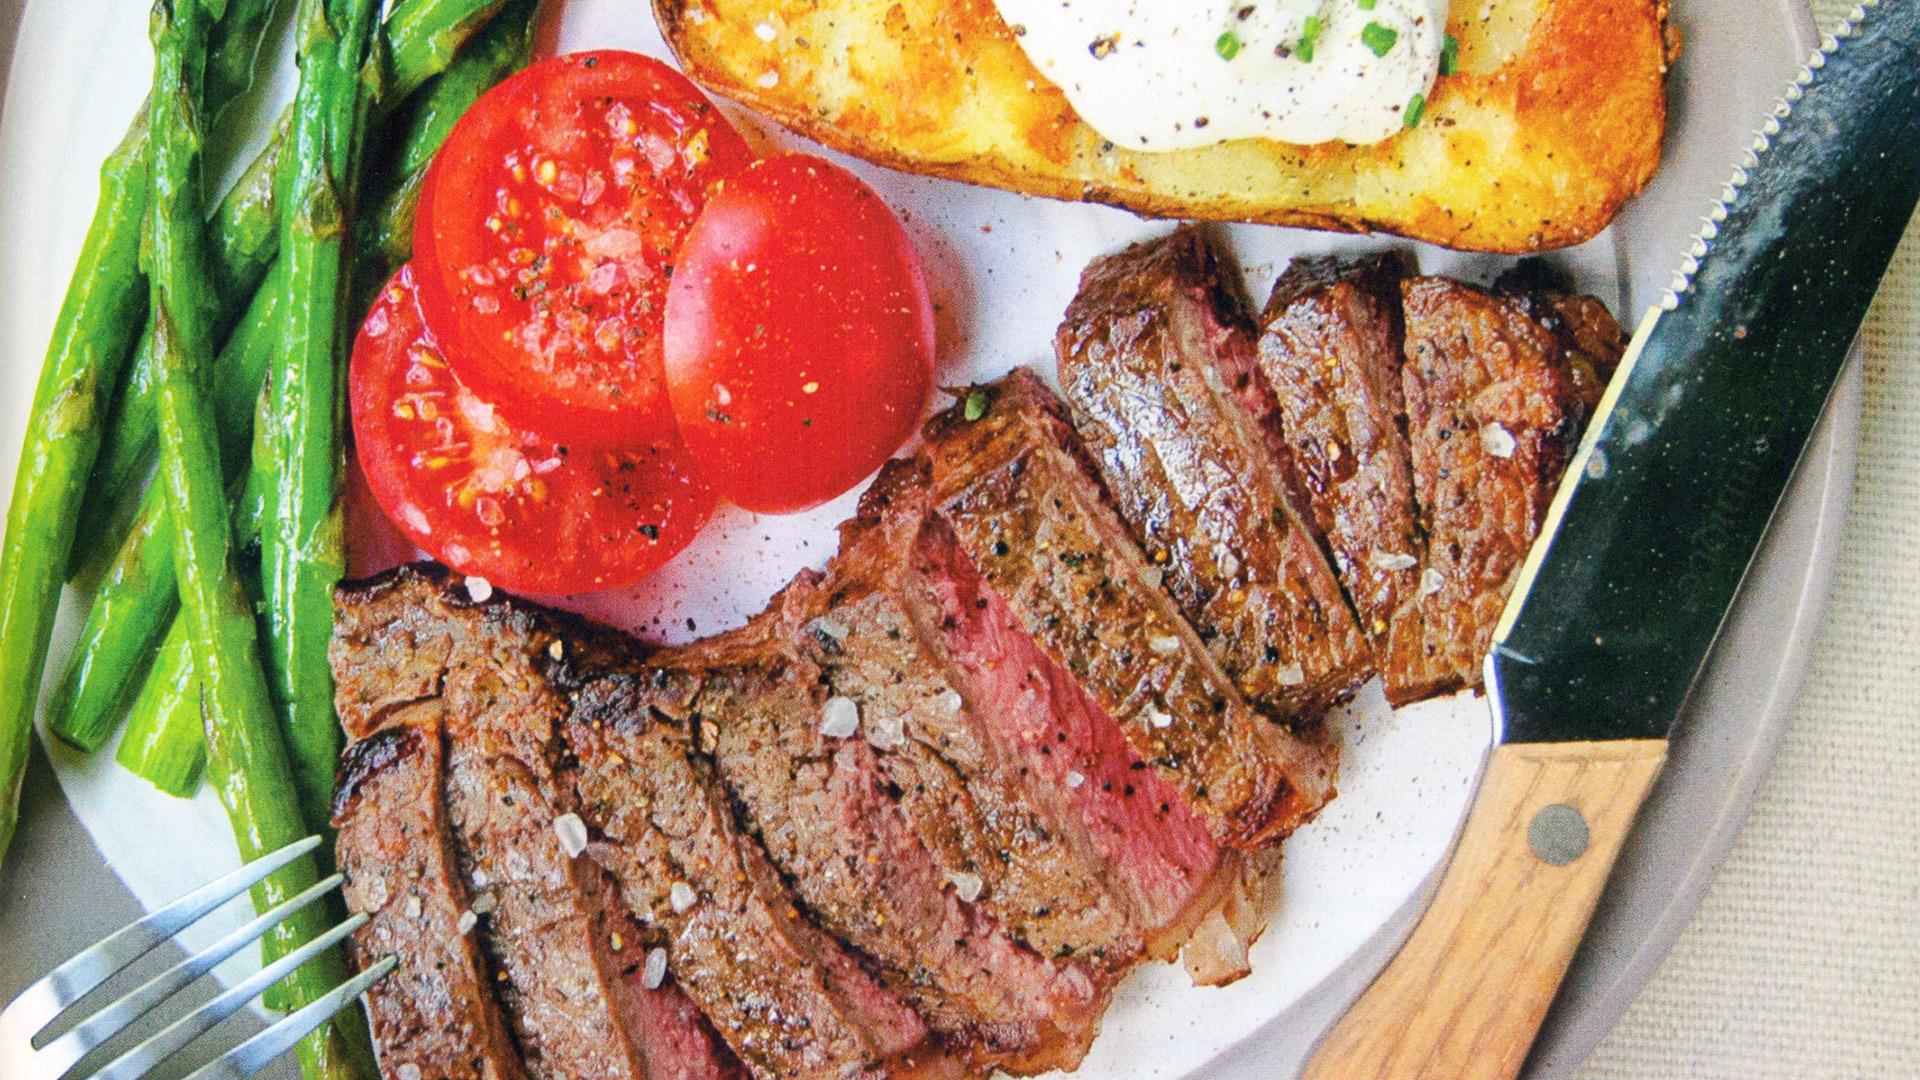 How to make a baked steak